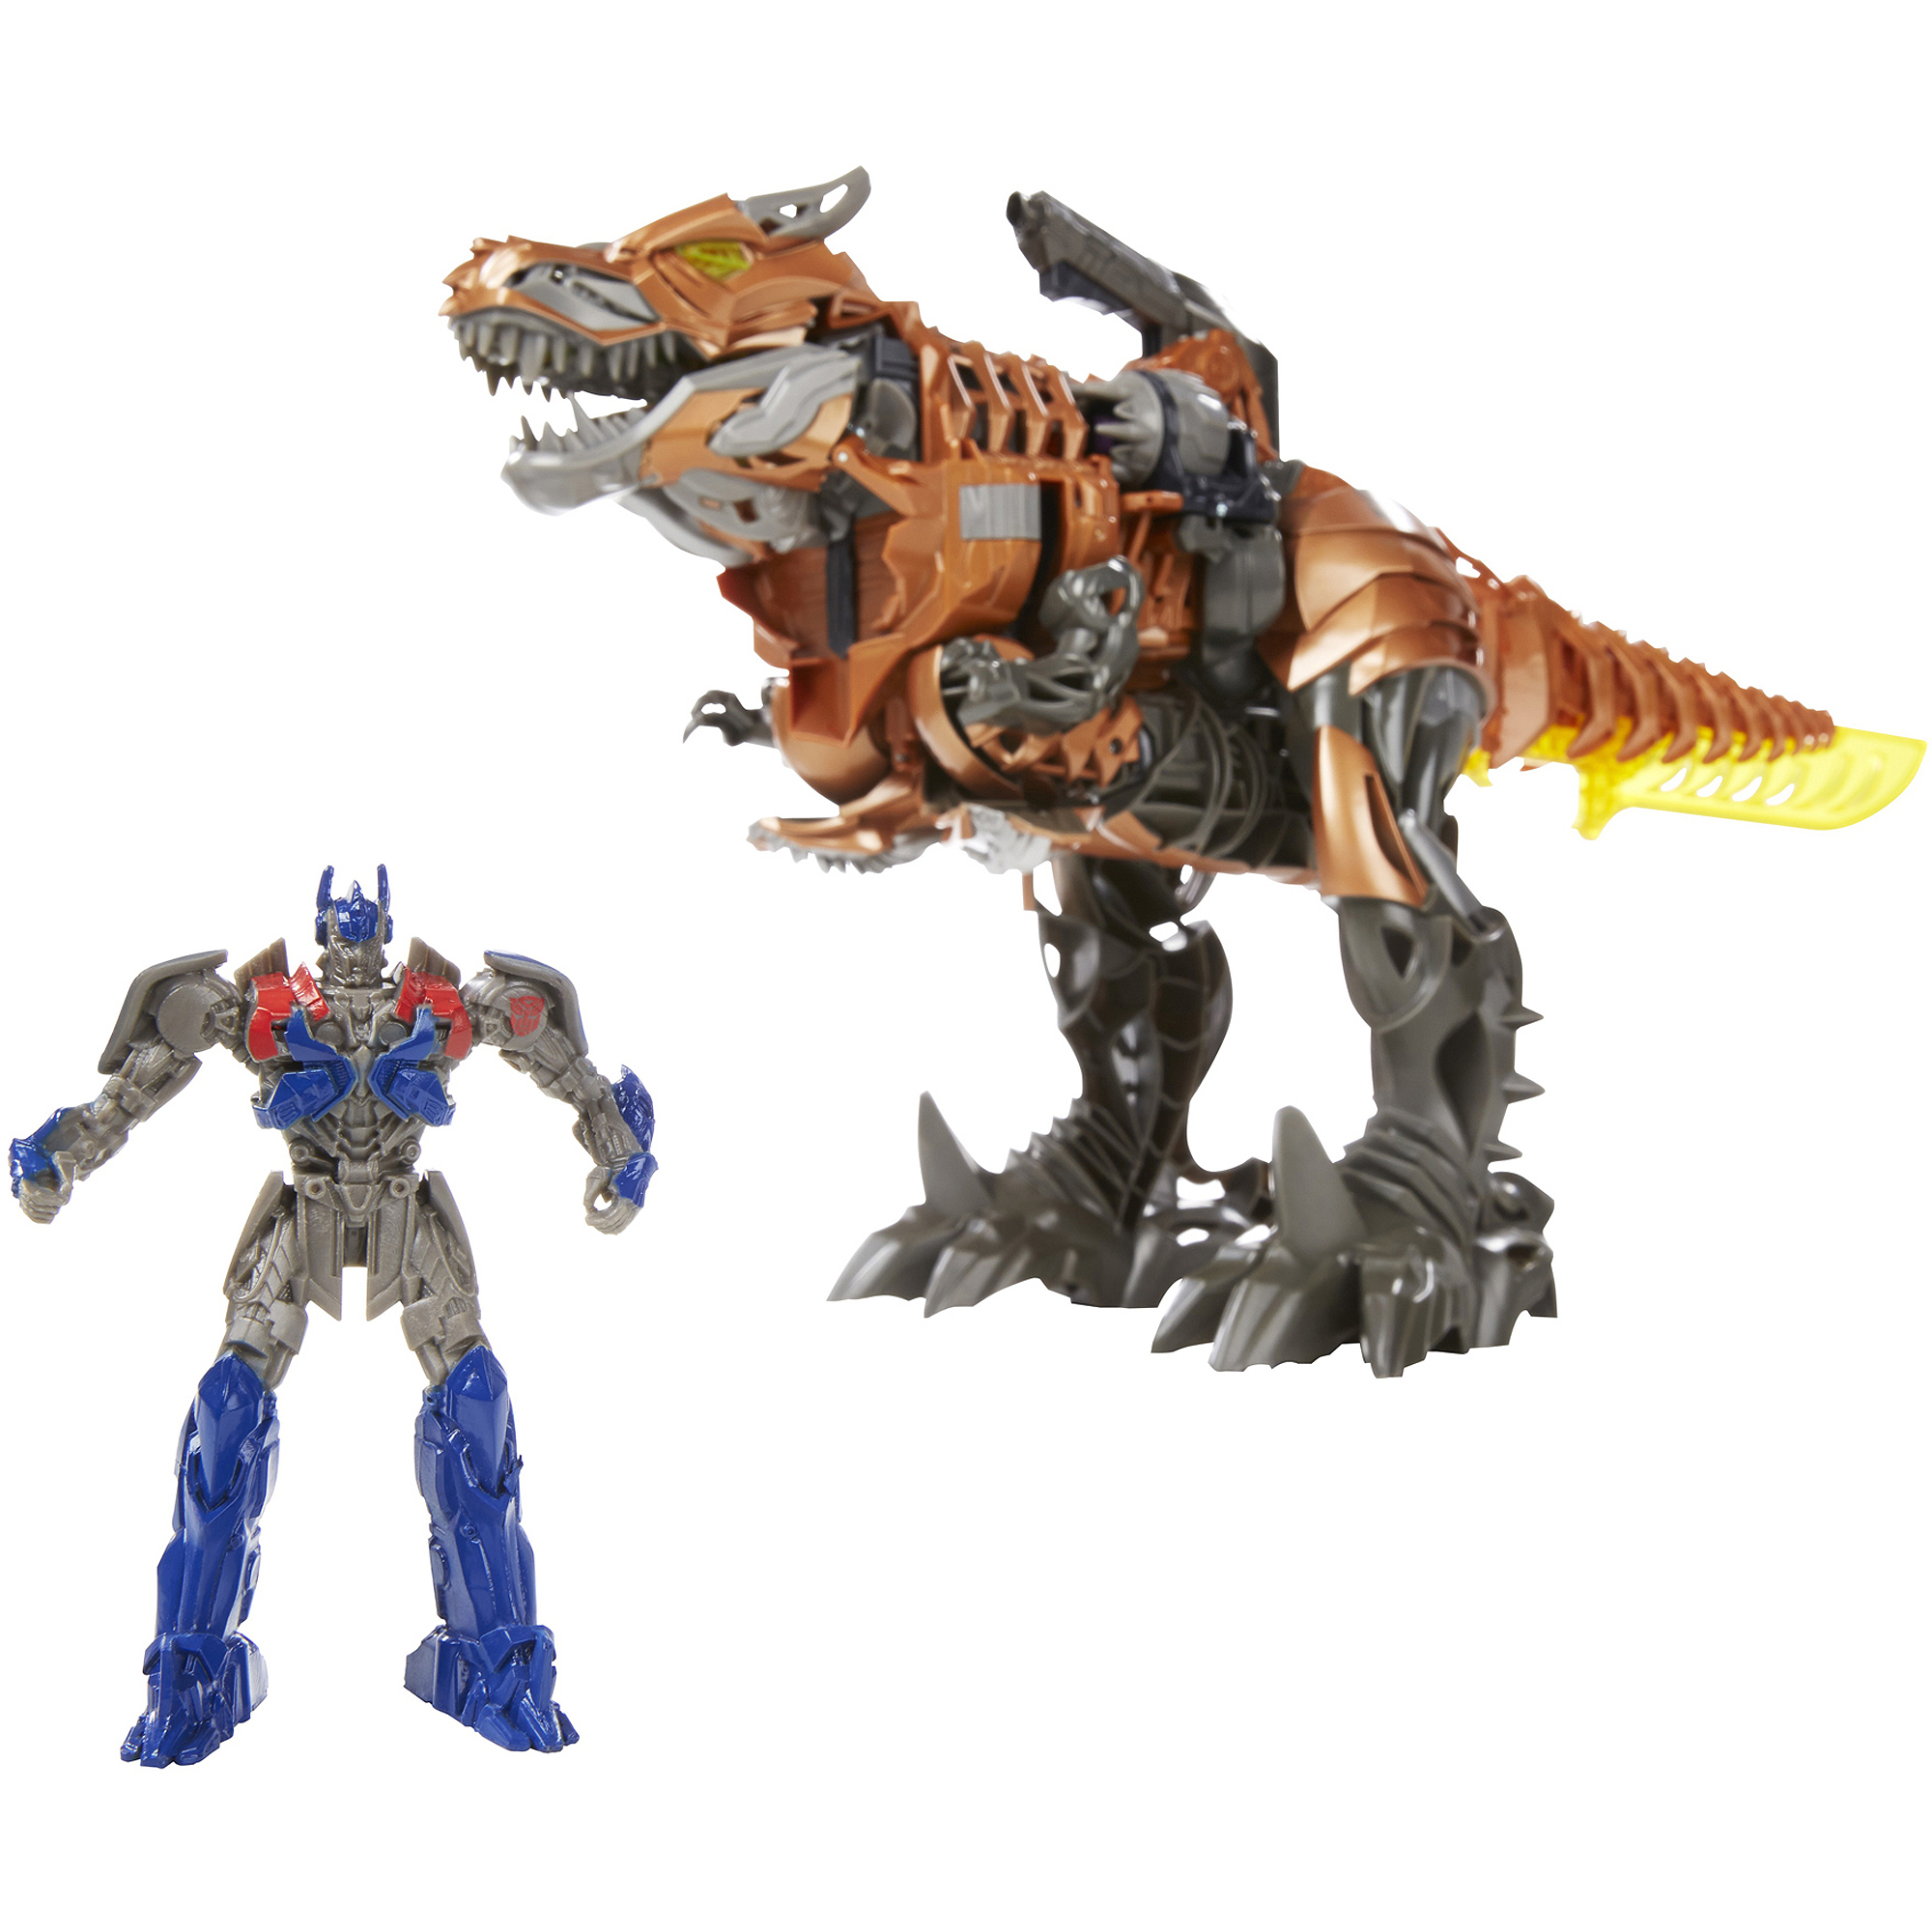 Let S Talk About Transformers 4 And What Really Up With The Dinobots